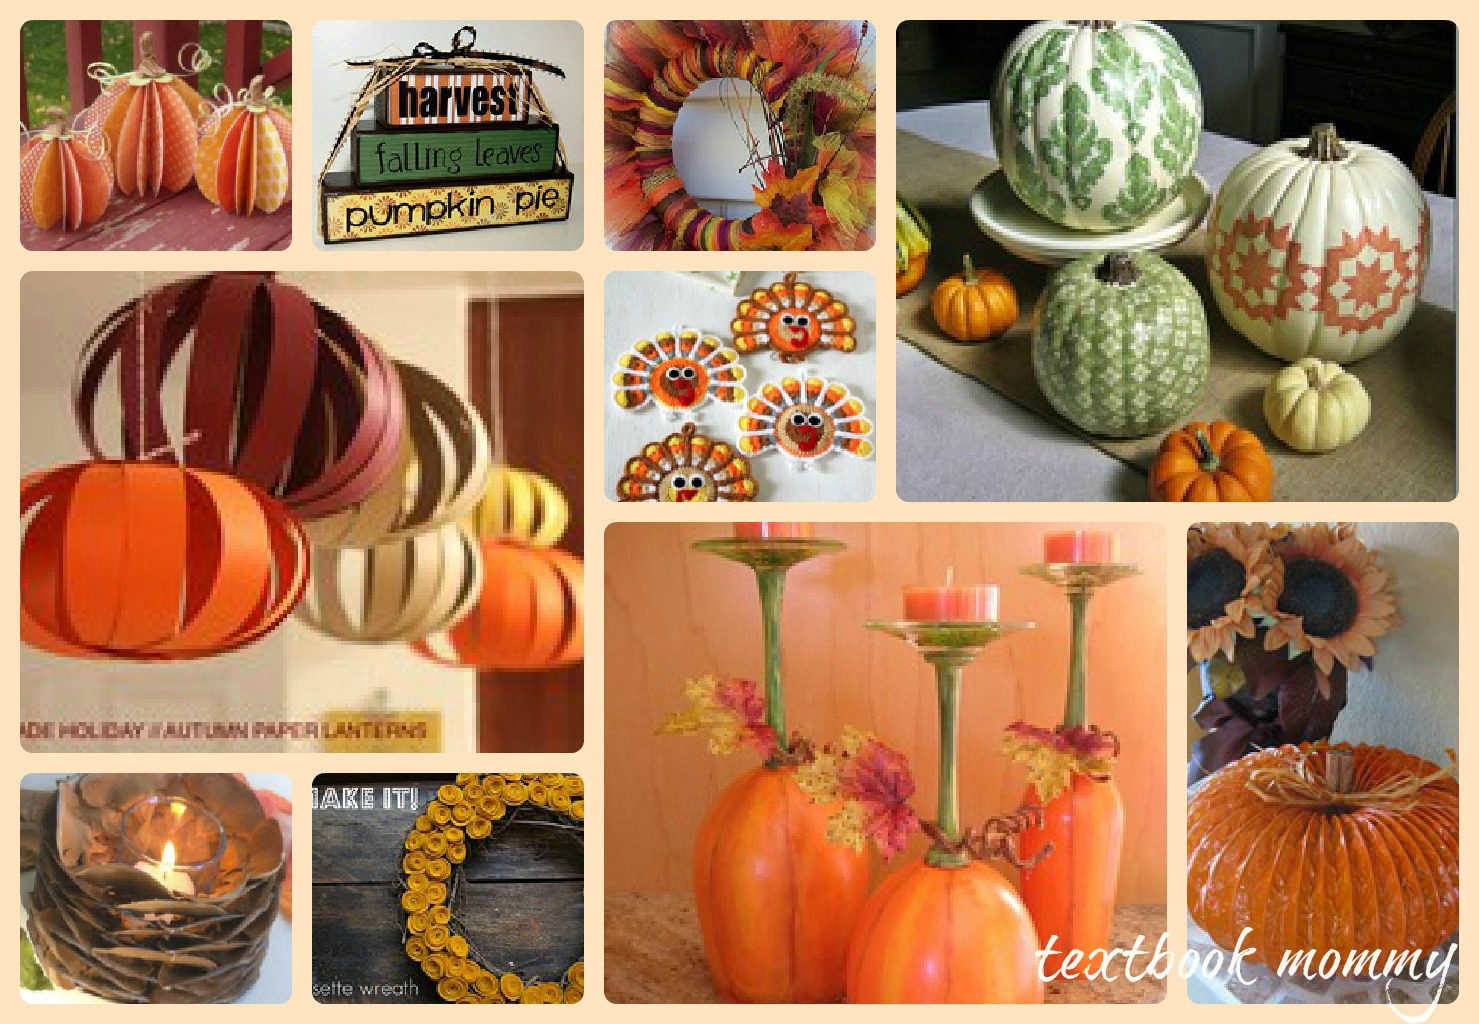 Textbook mommy 10 fantastic thanksgiving home decor crafts for Thanksgiving home ideas